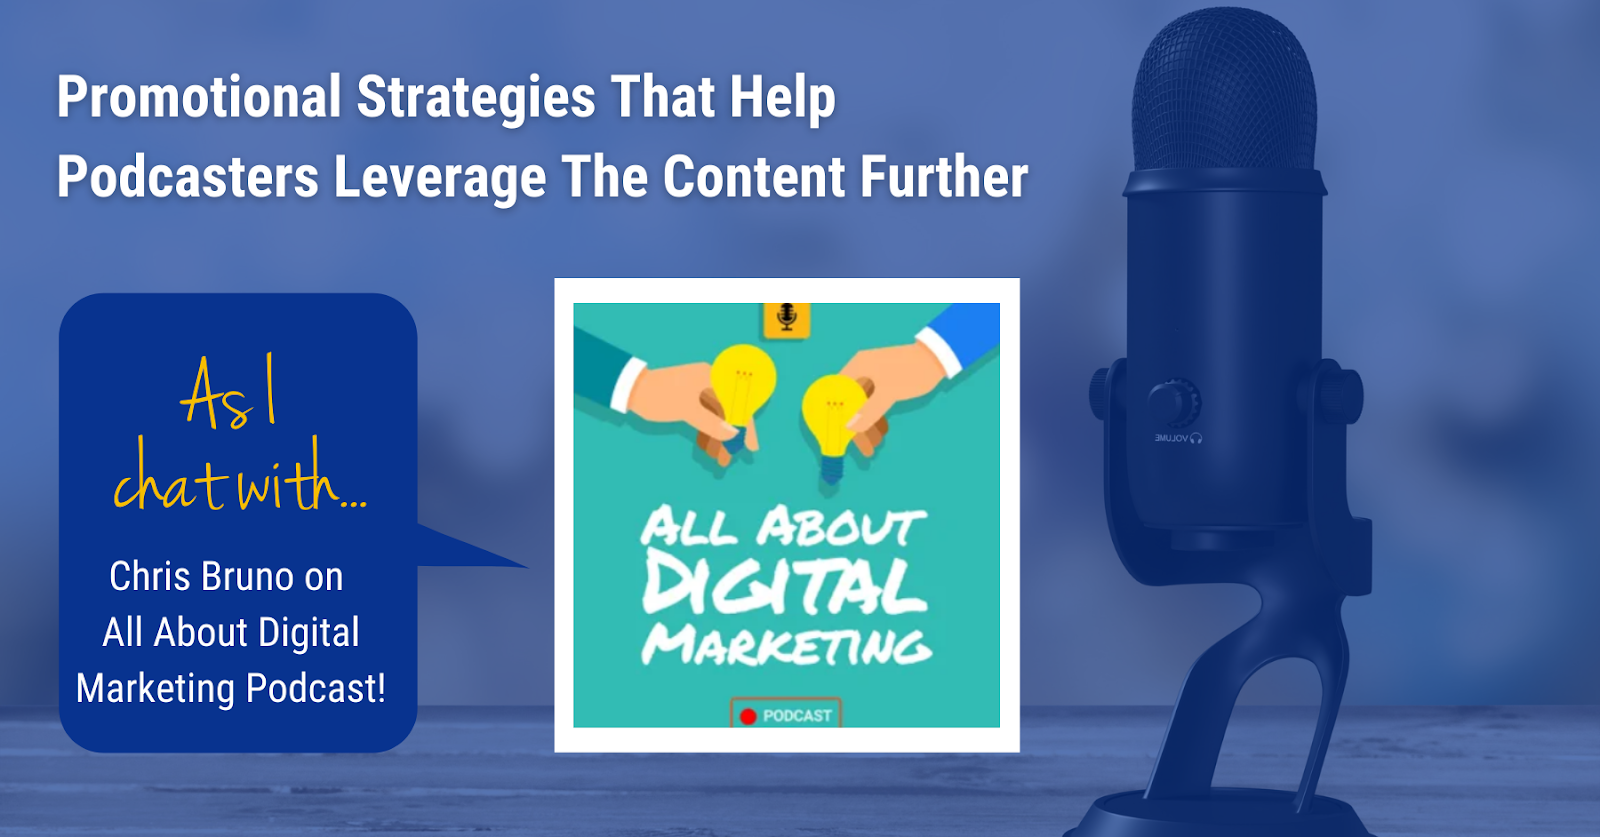 Podcast Promotion Strategies To Leverage The Content Further